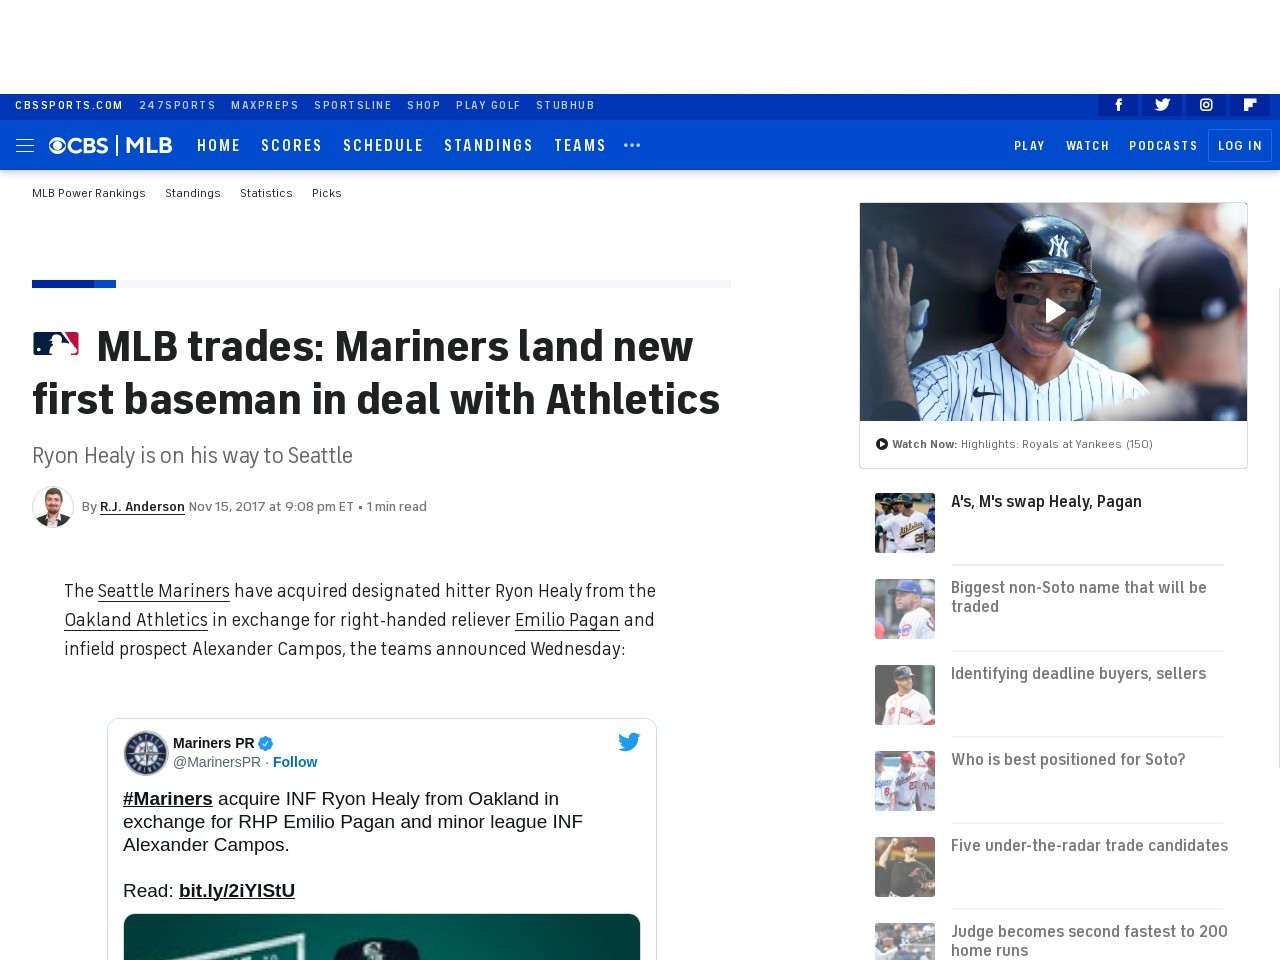 MLB trades: Mariners land new first baseman in deal with Athletics